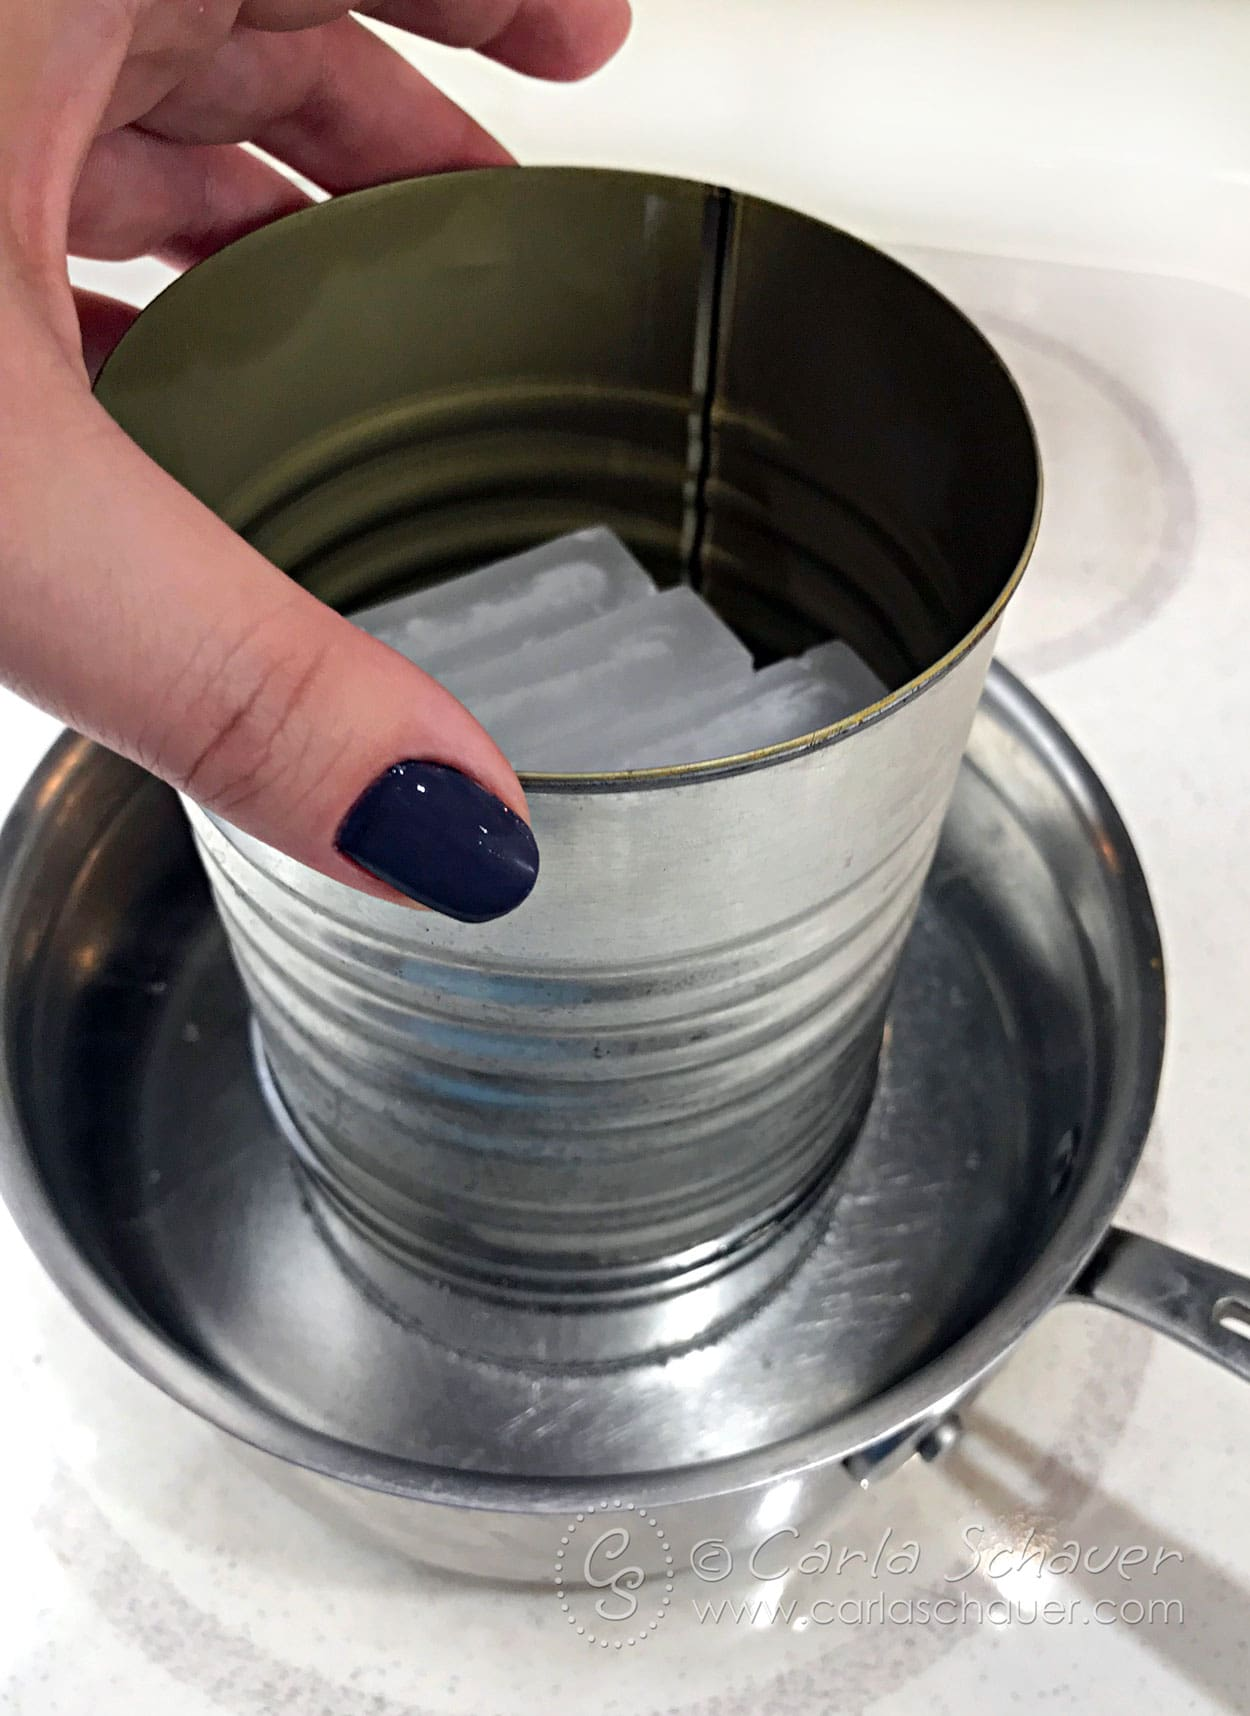 Can of paraffin wax blocks for melting.